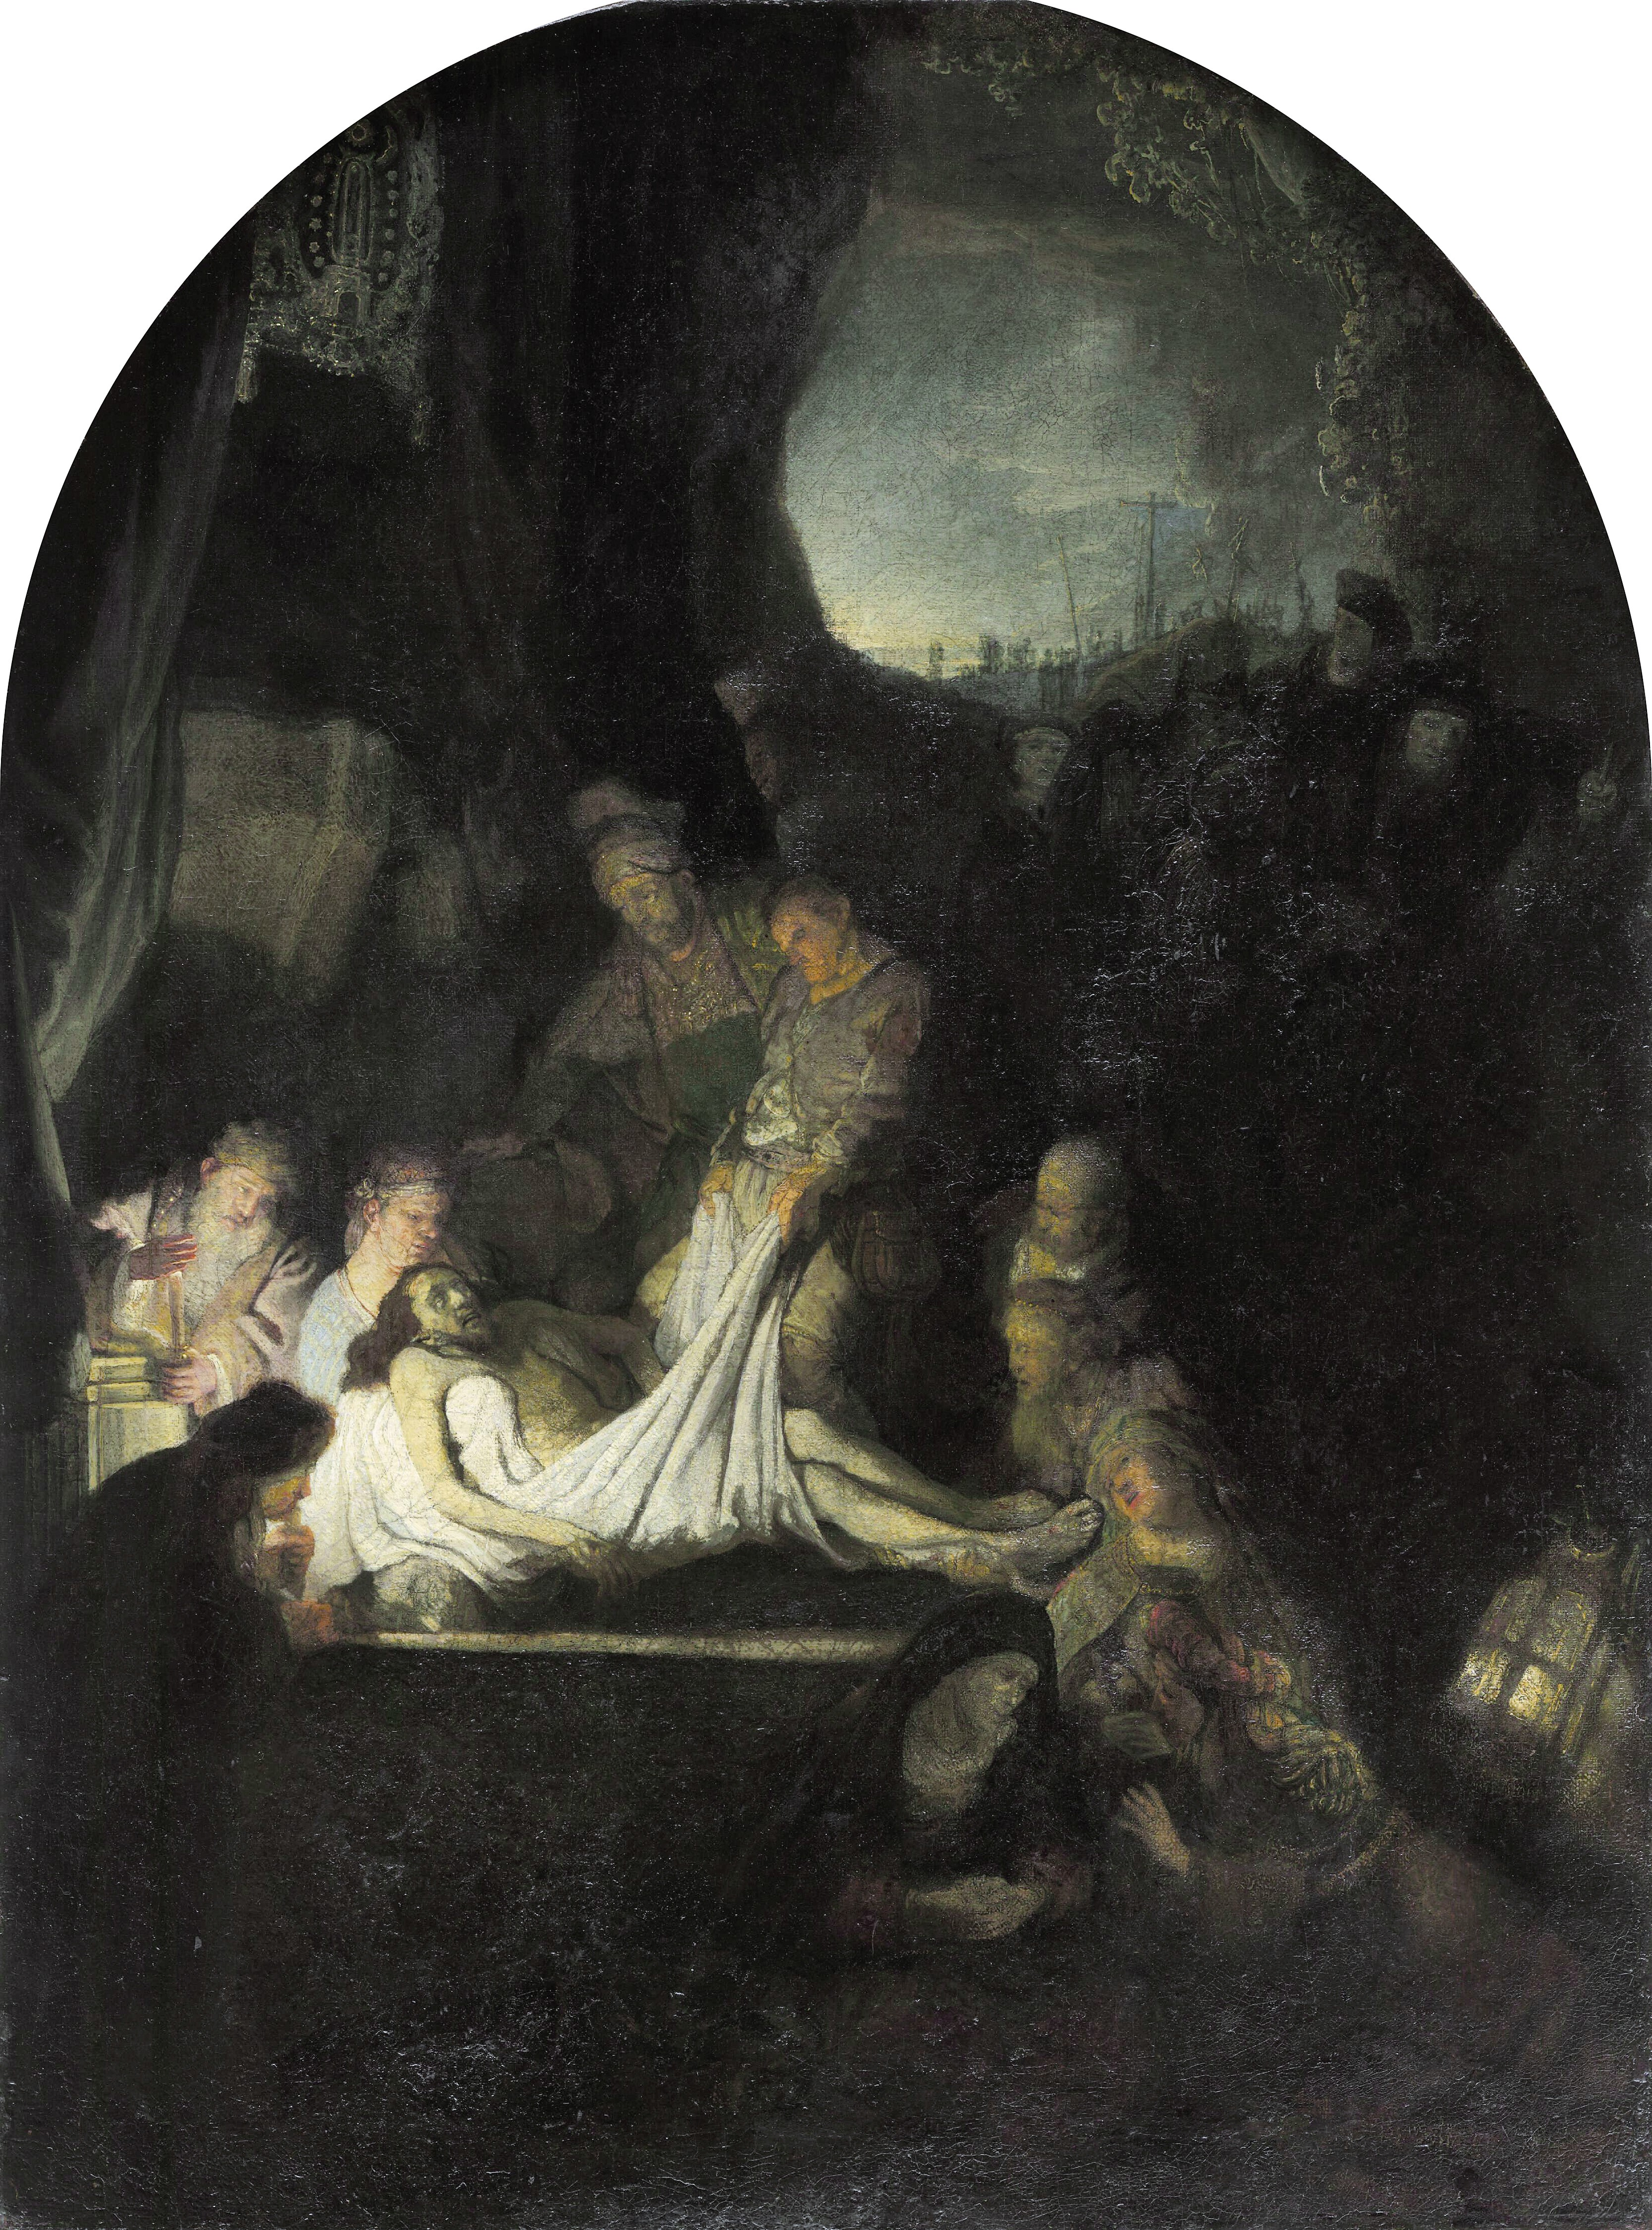 The entombment, by Rembrandt